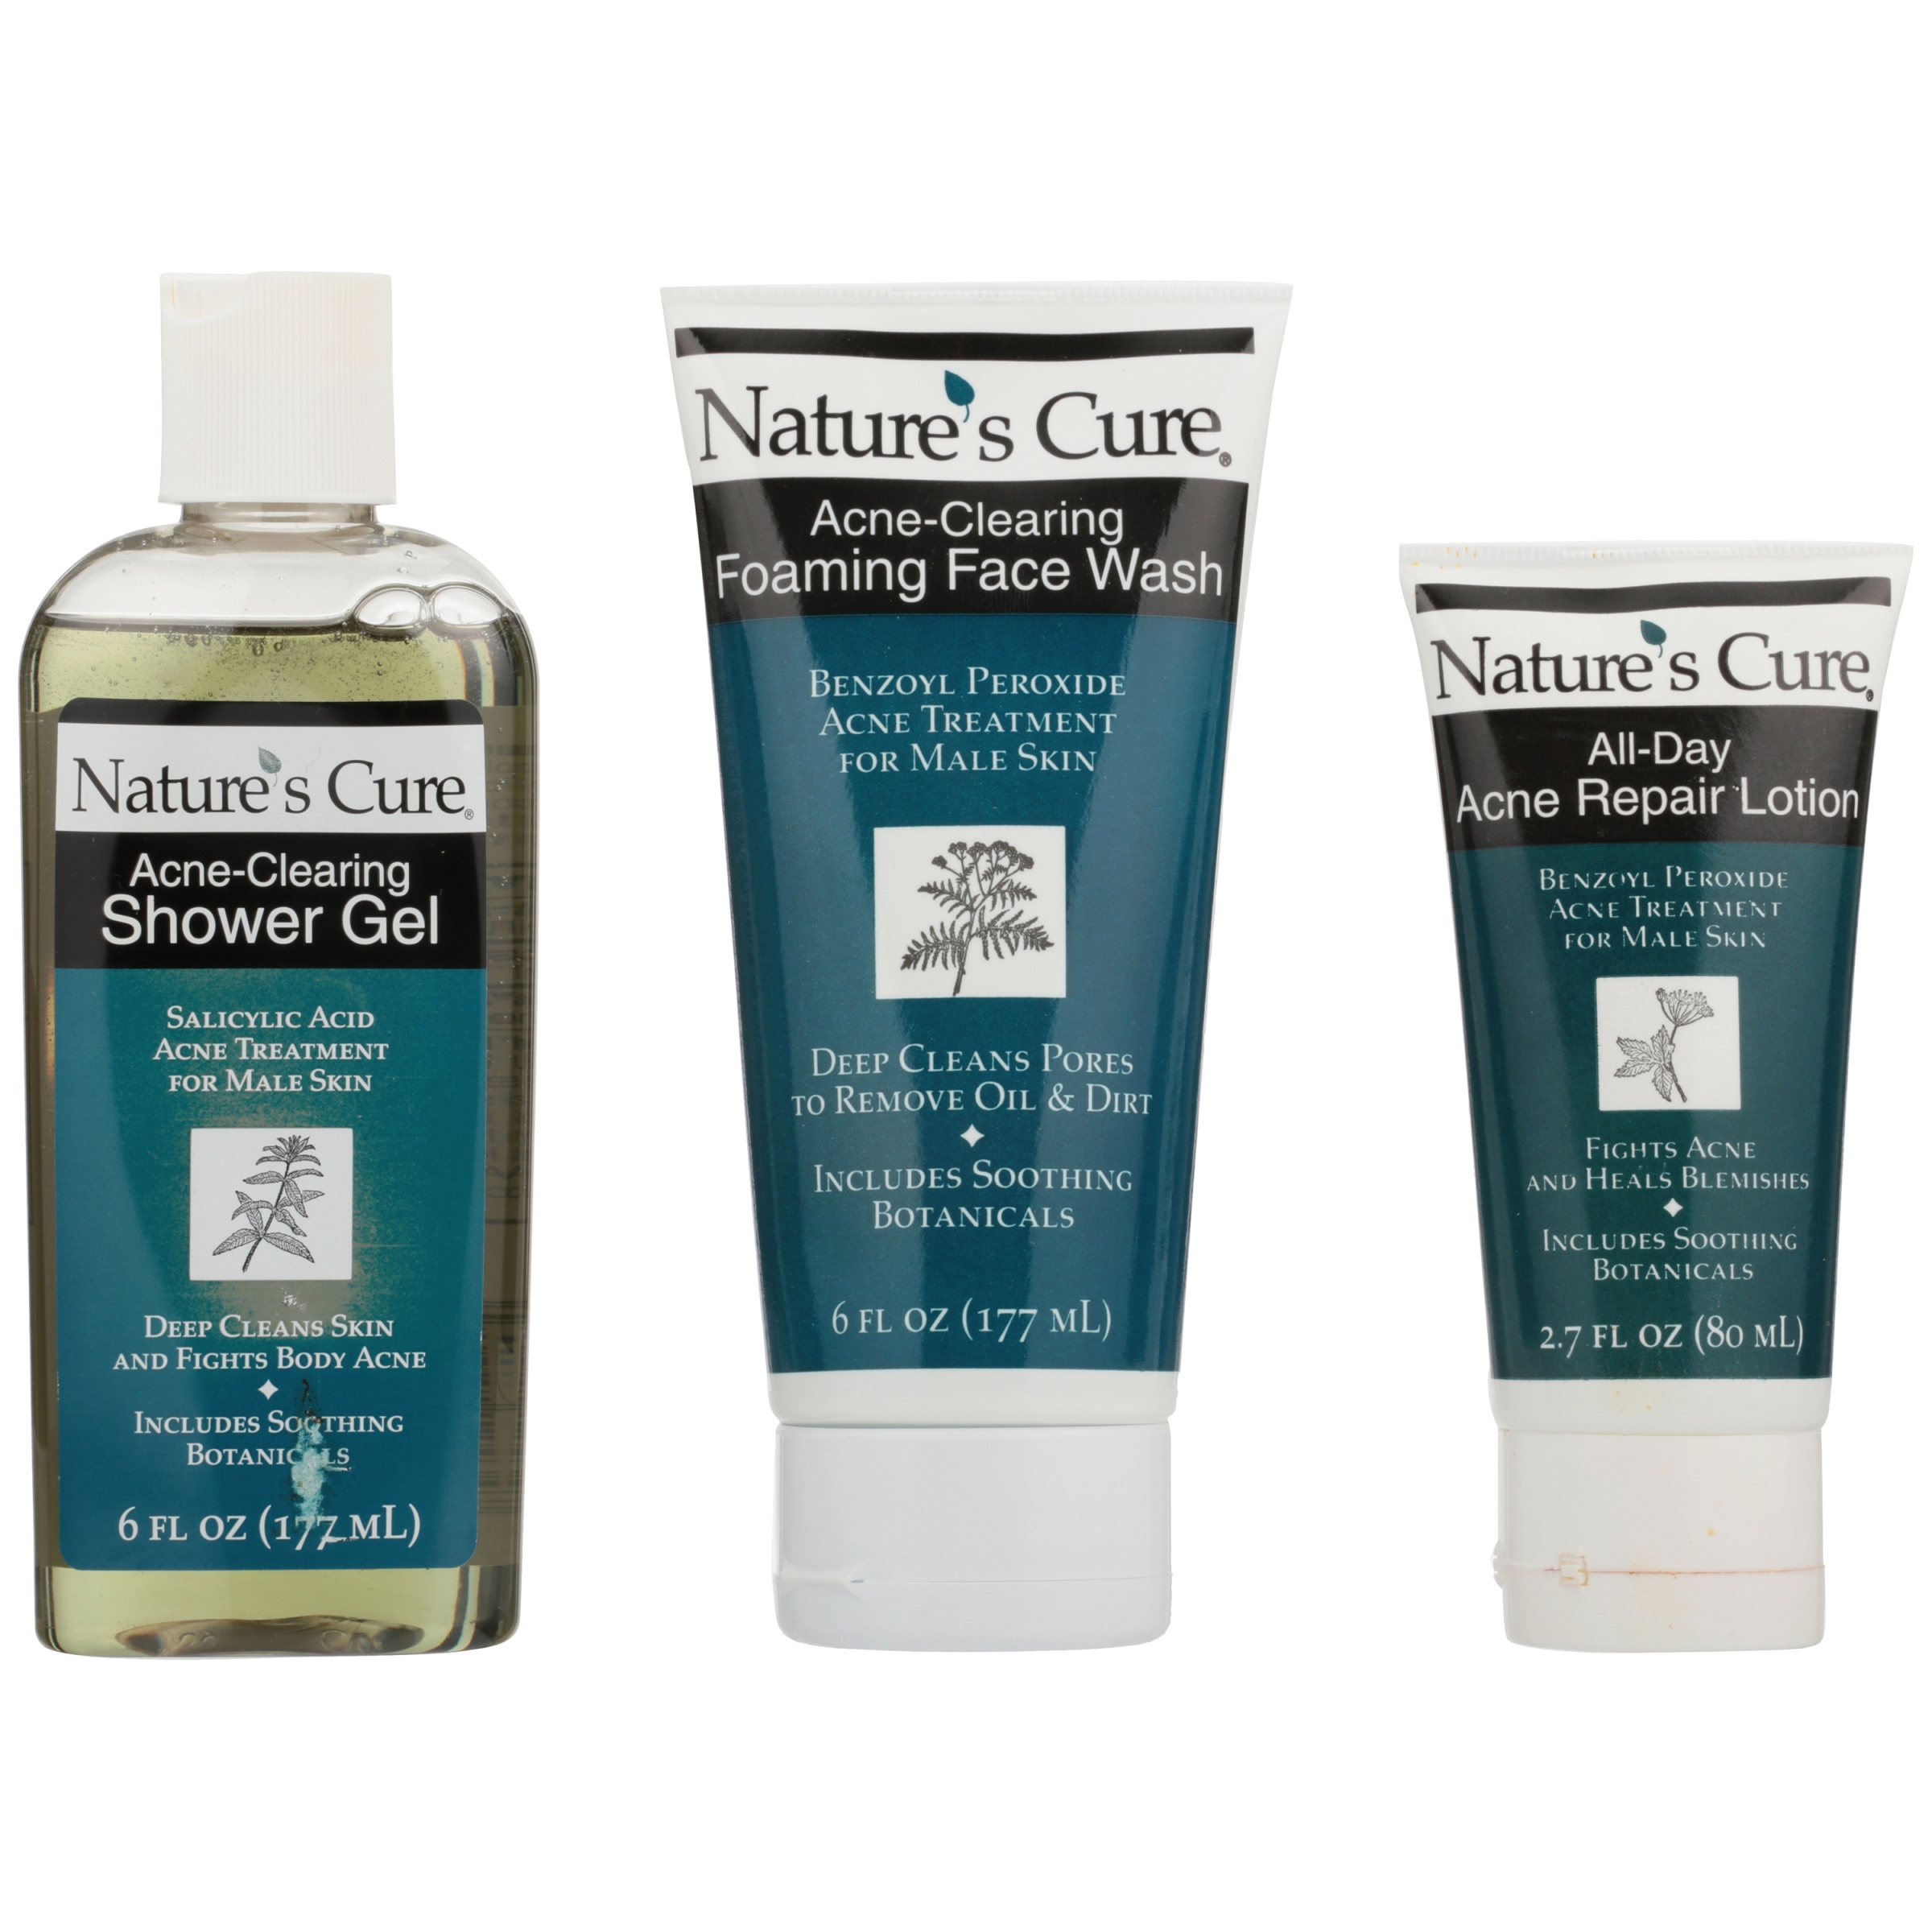 Nature's Cure® Anti-Acne Face & Body Shower Kit 3 pc Pack